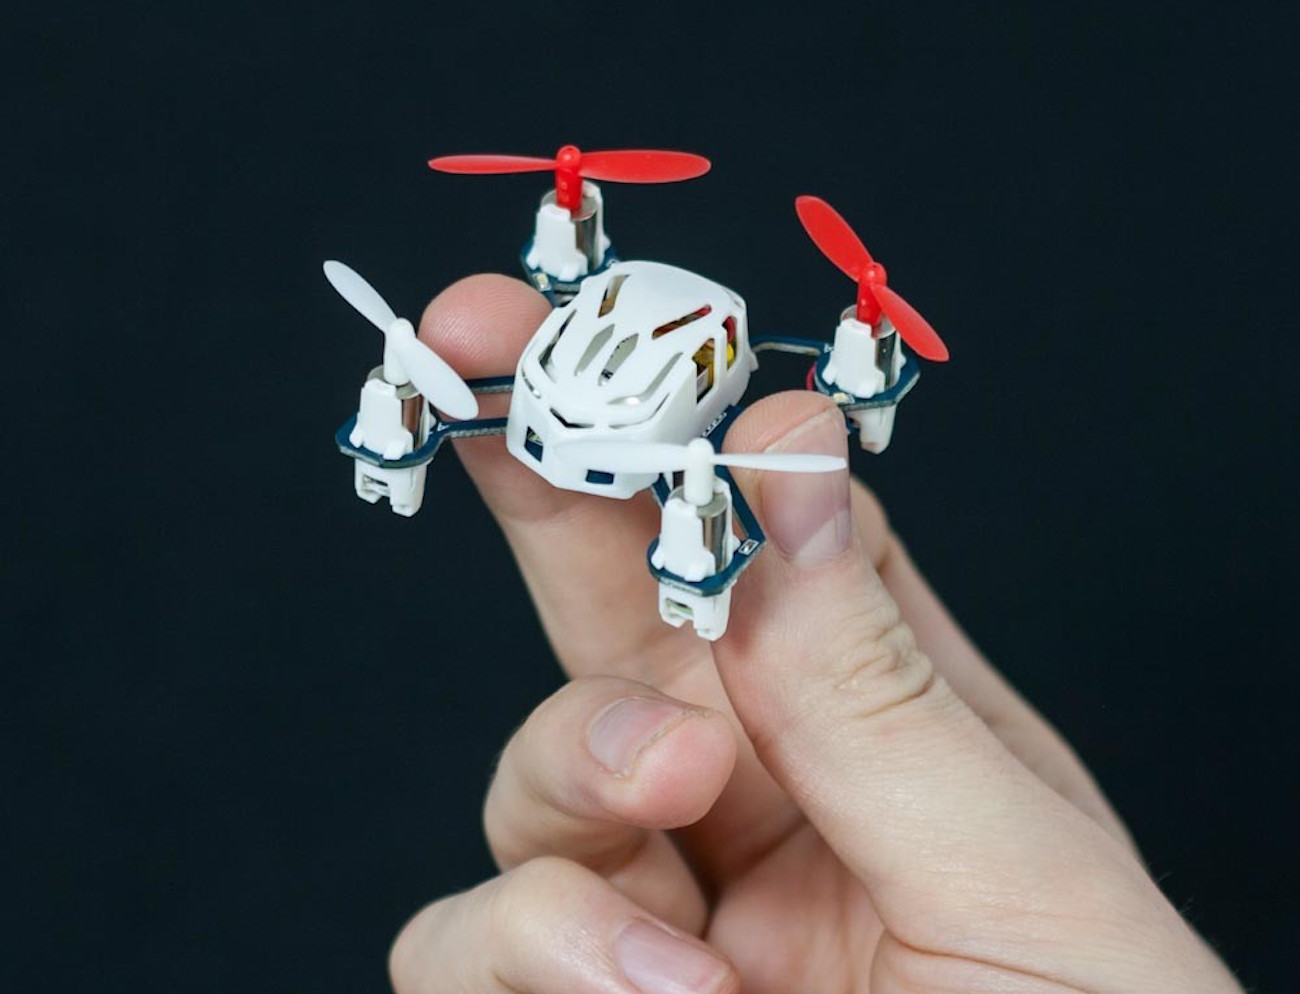 Hubsan Q4 Nano Mini – World's Smallest Quad Copter